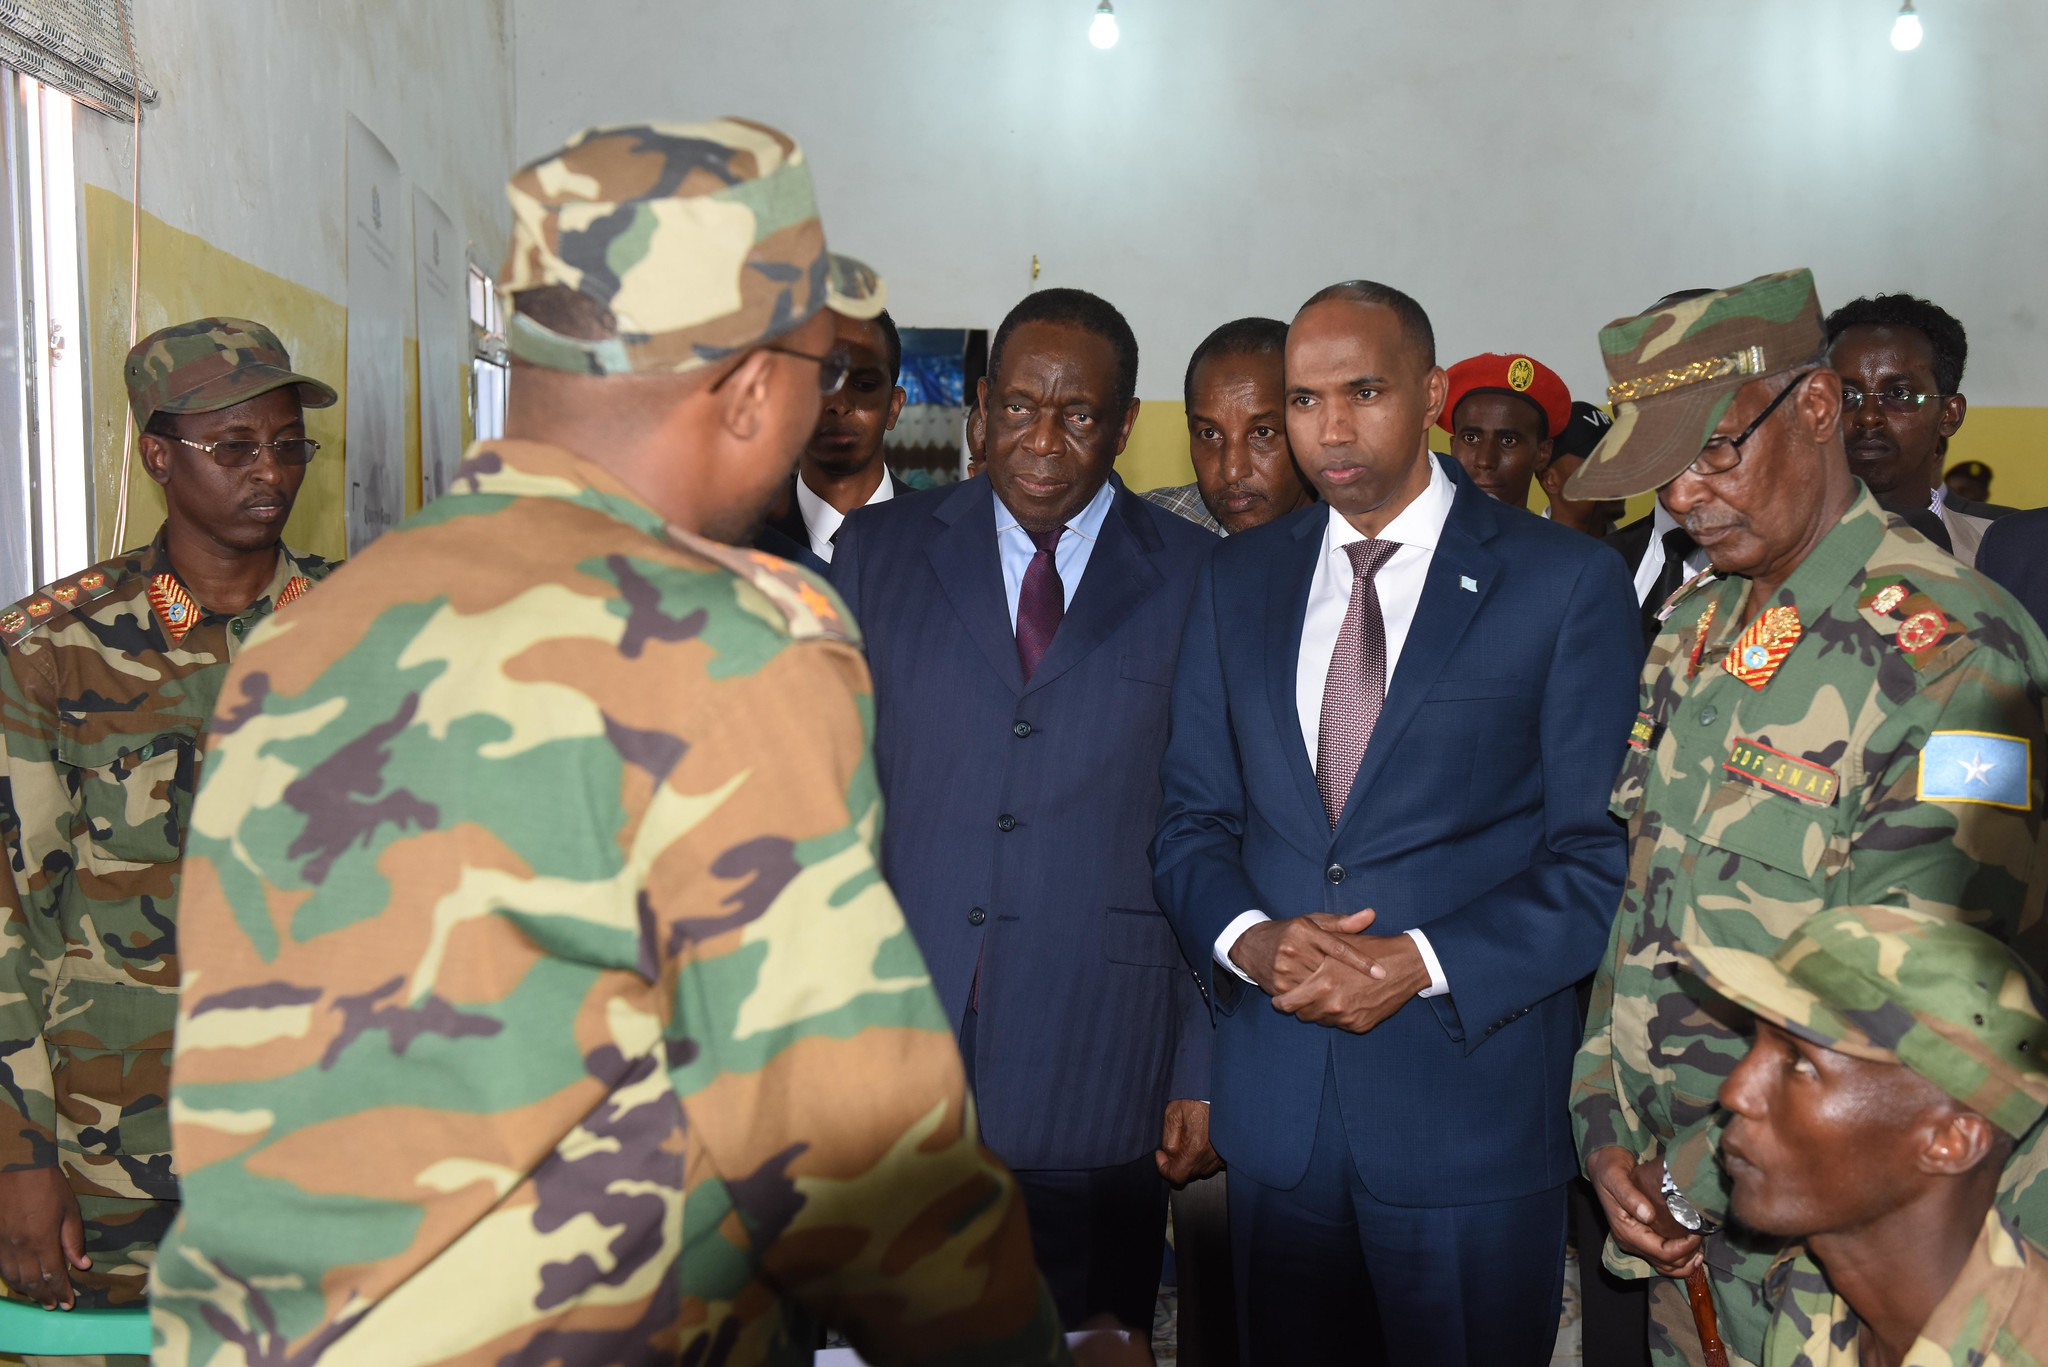 AMISOM - African Union Mission In Somalia | Peacekeeping Mission